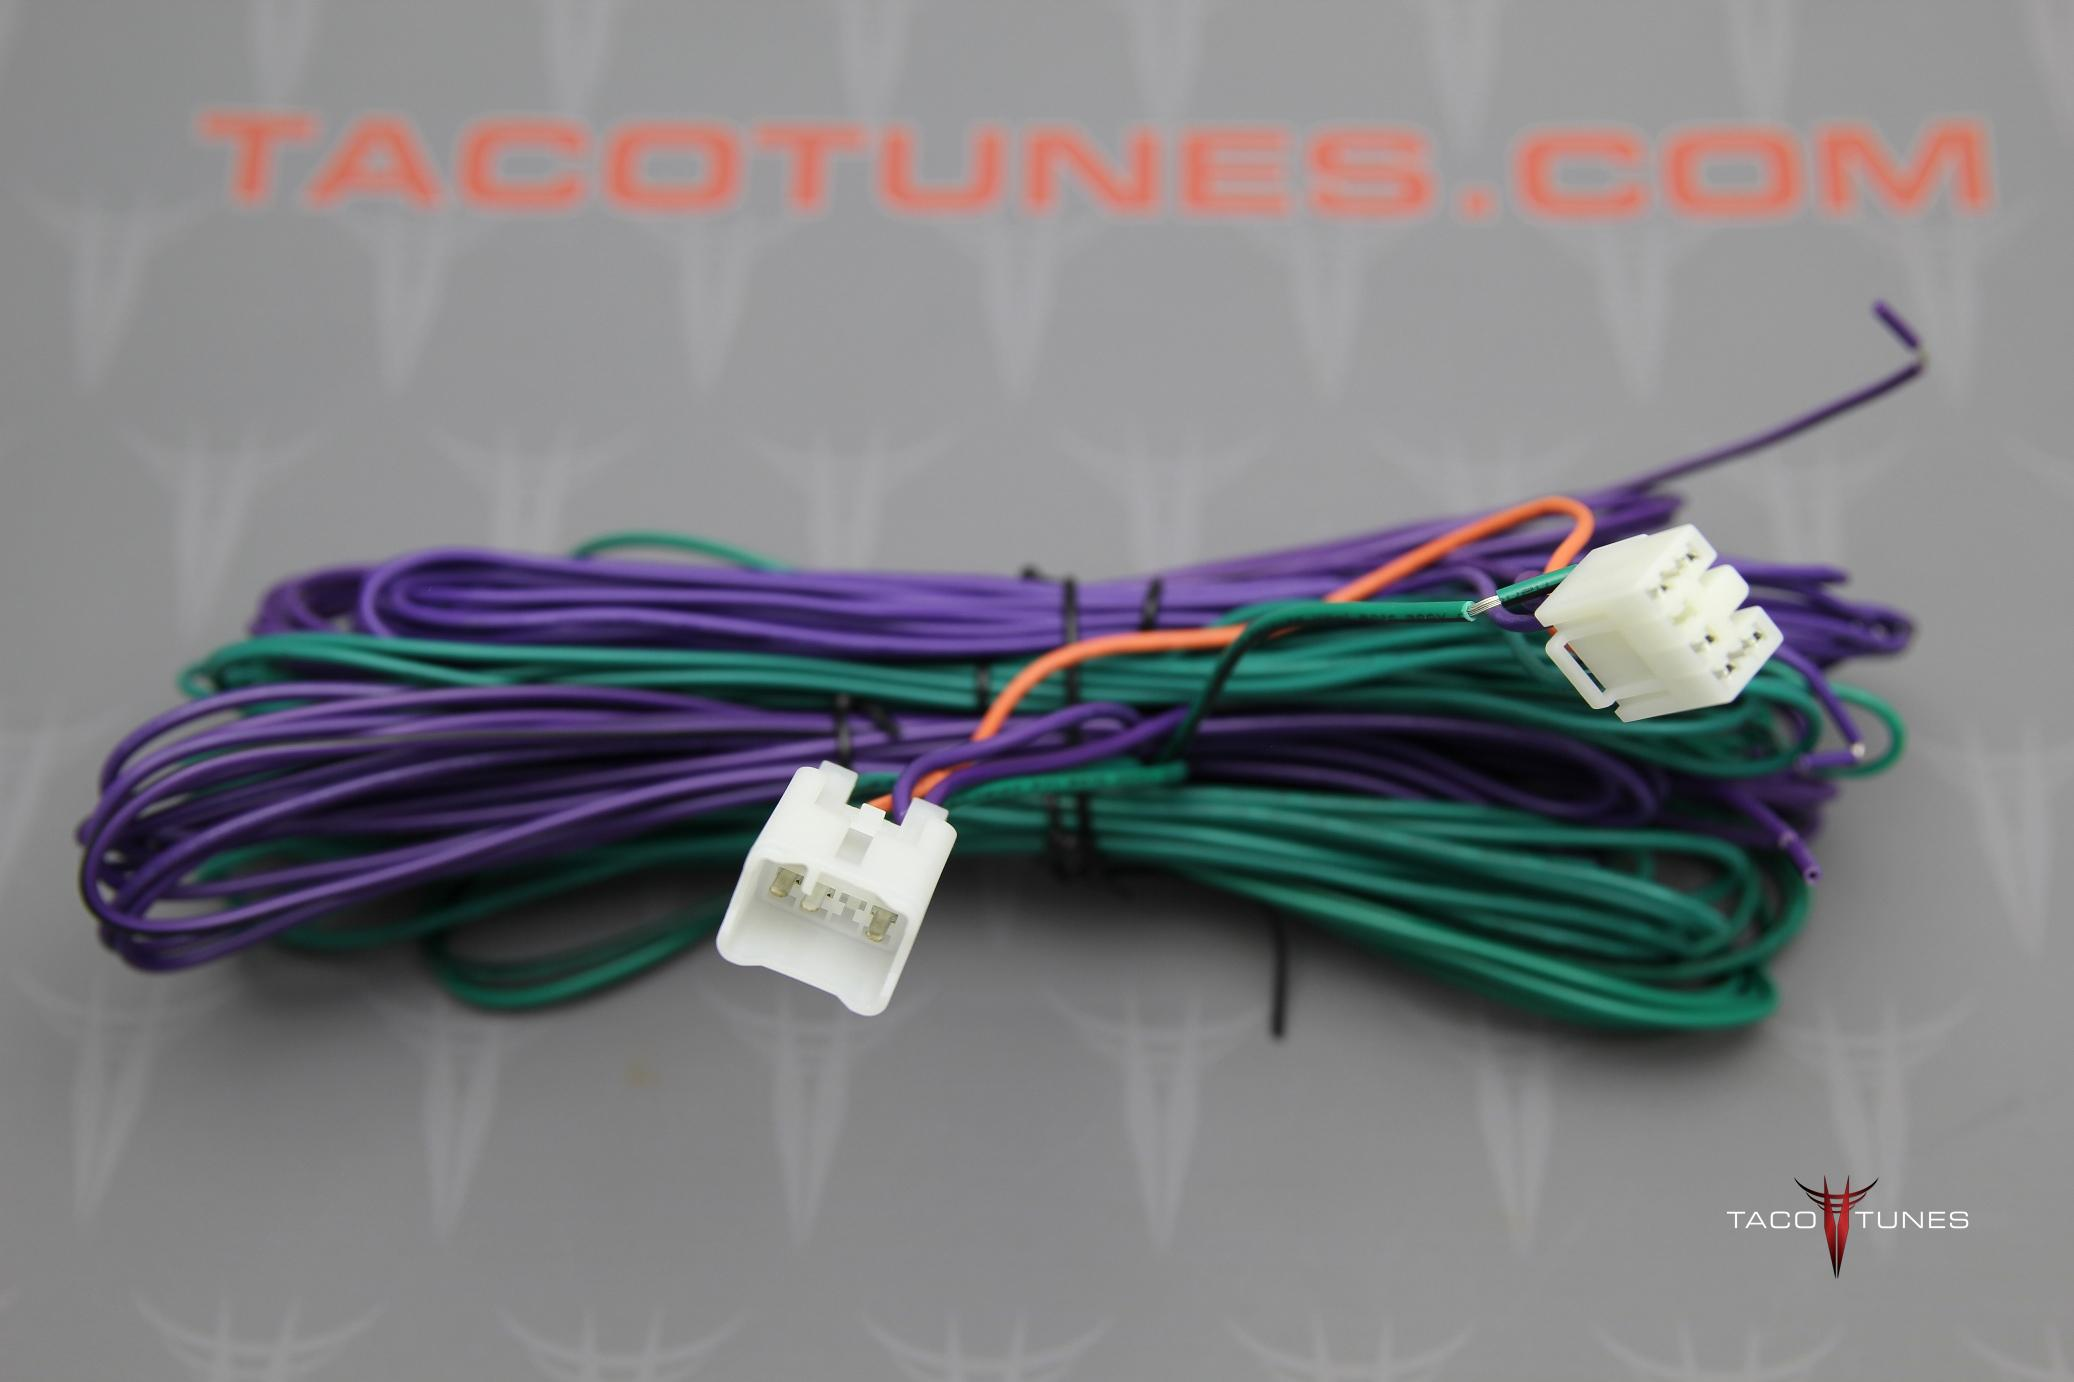 Toyota Tacoma Plug and Play amp harness 3?fit\\\=2074%2C1382 xp240 york heat pump wiring diagram conventional fire alarm  at bakdesigns.co